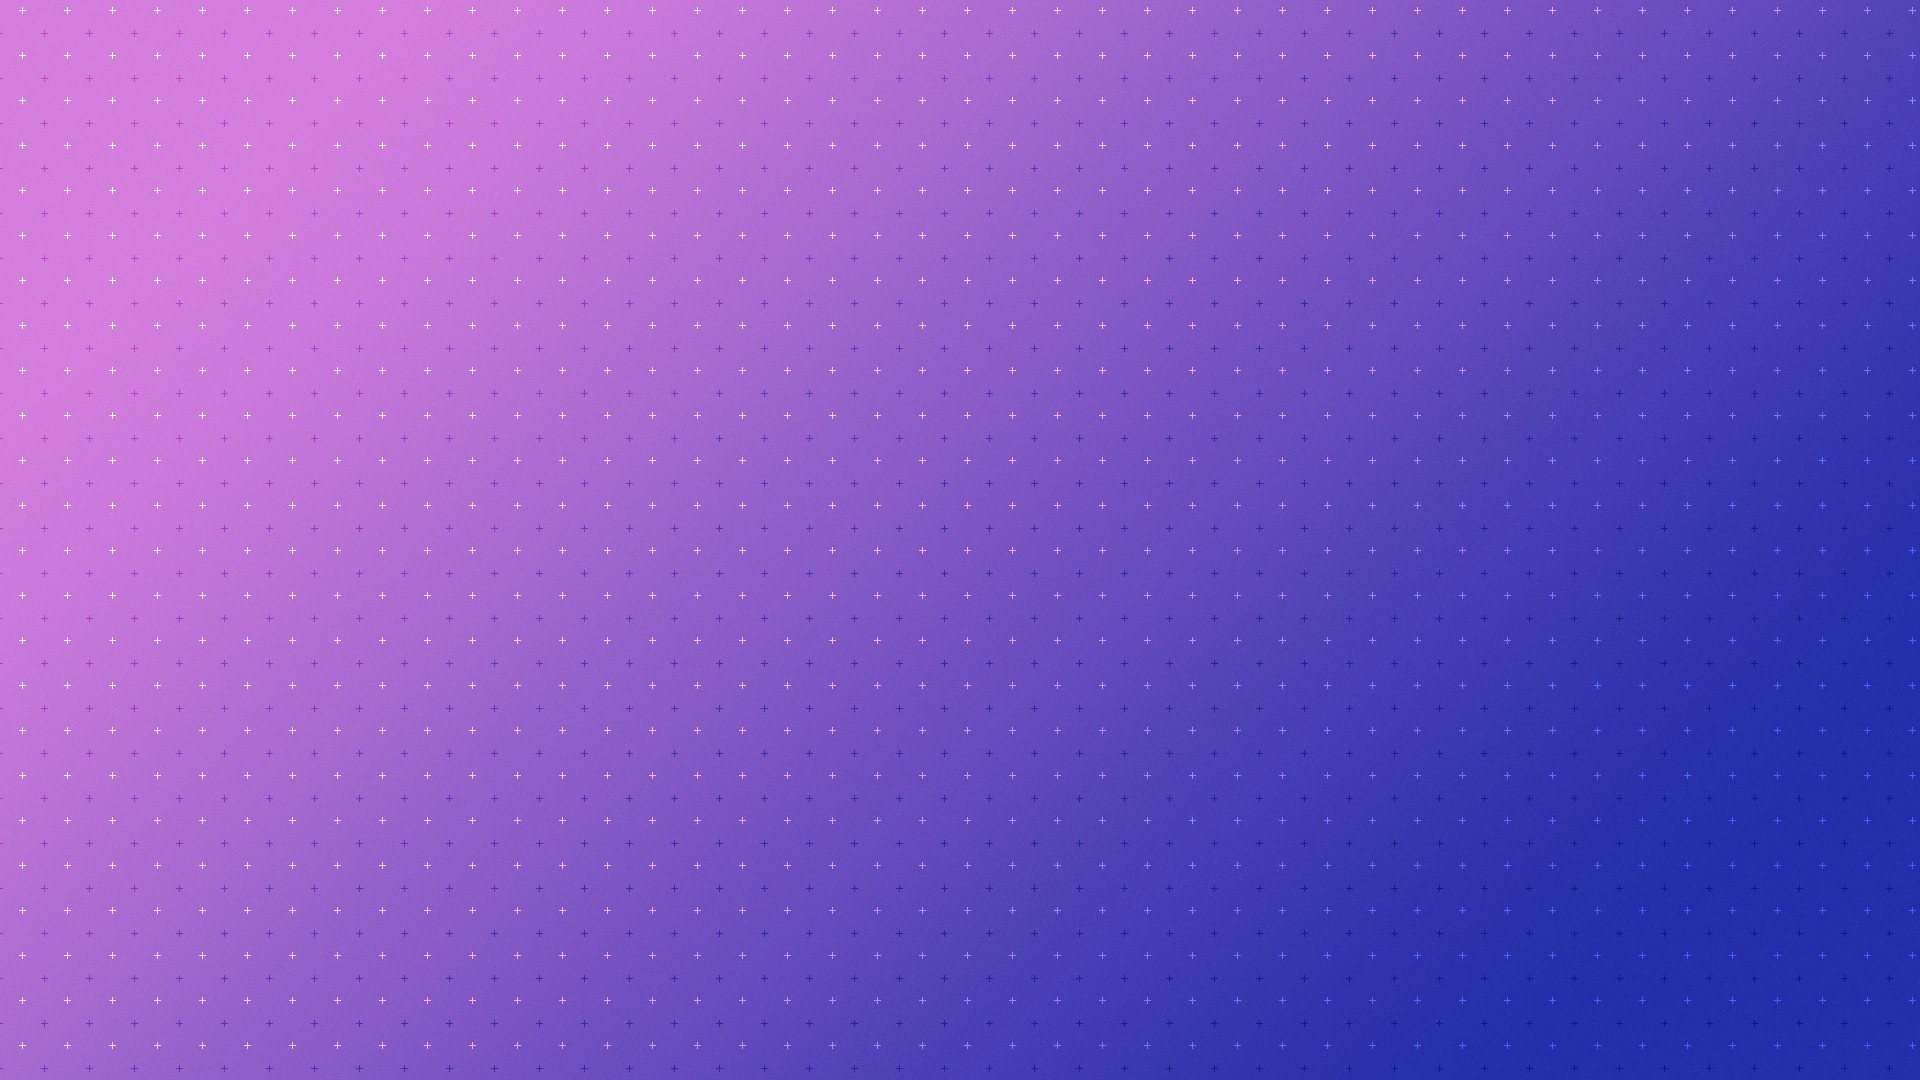 gradient wallpaper download free stunning full hd wallpapers for